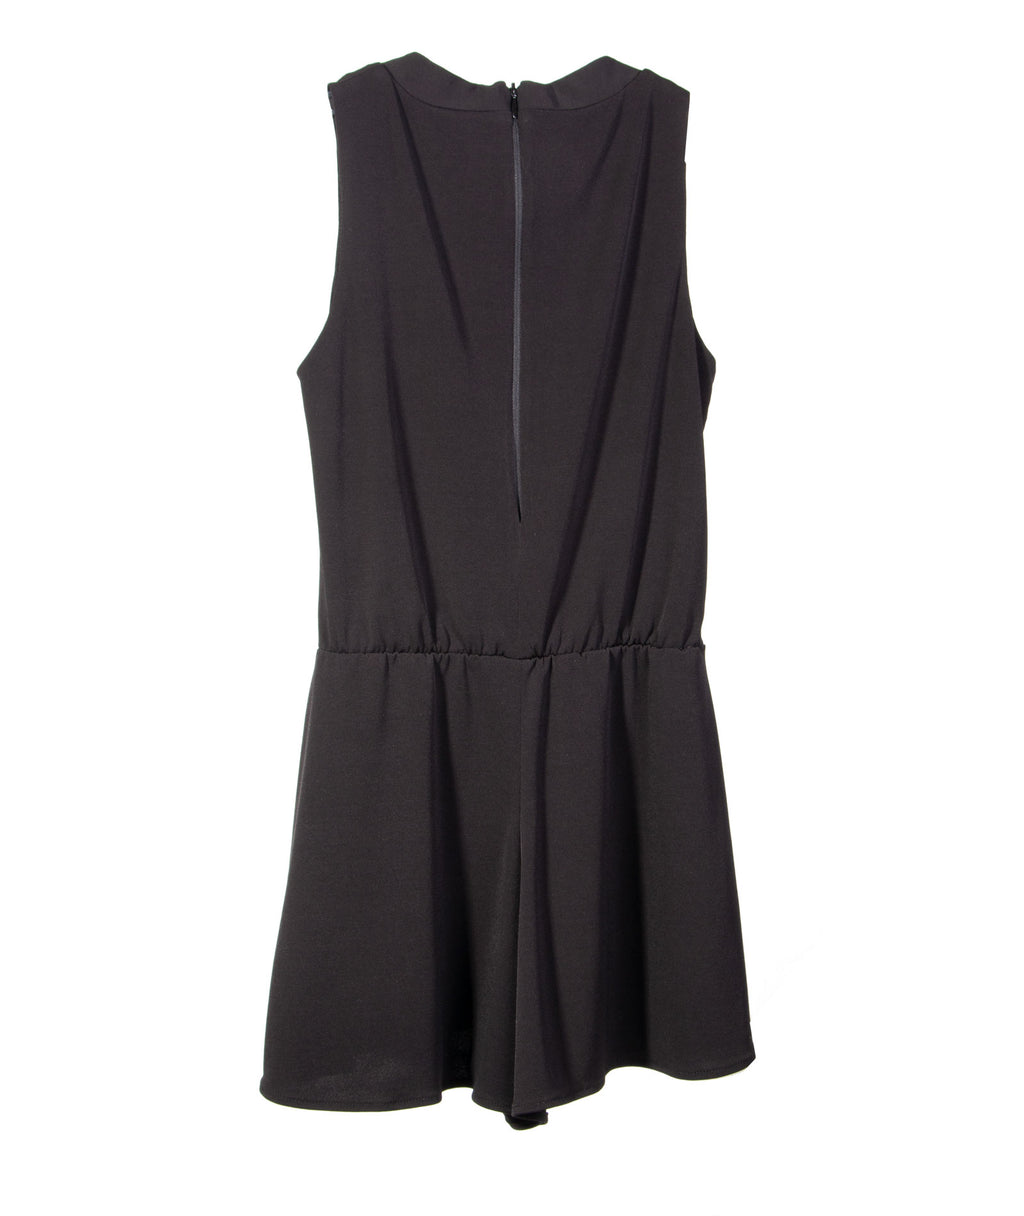 By Debra Girls Ity Romper Black